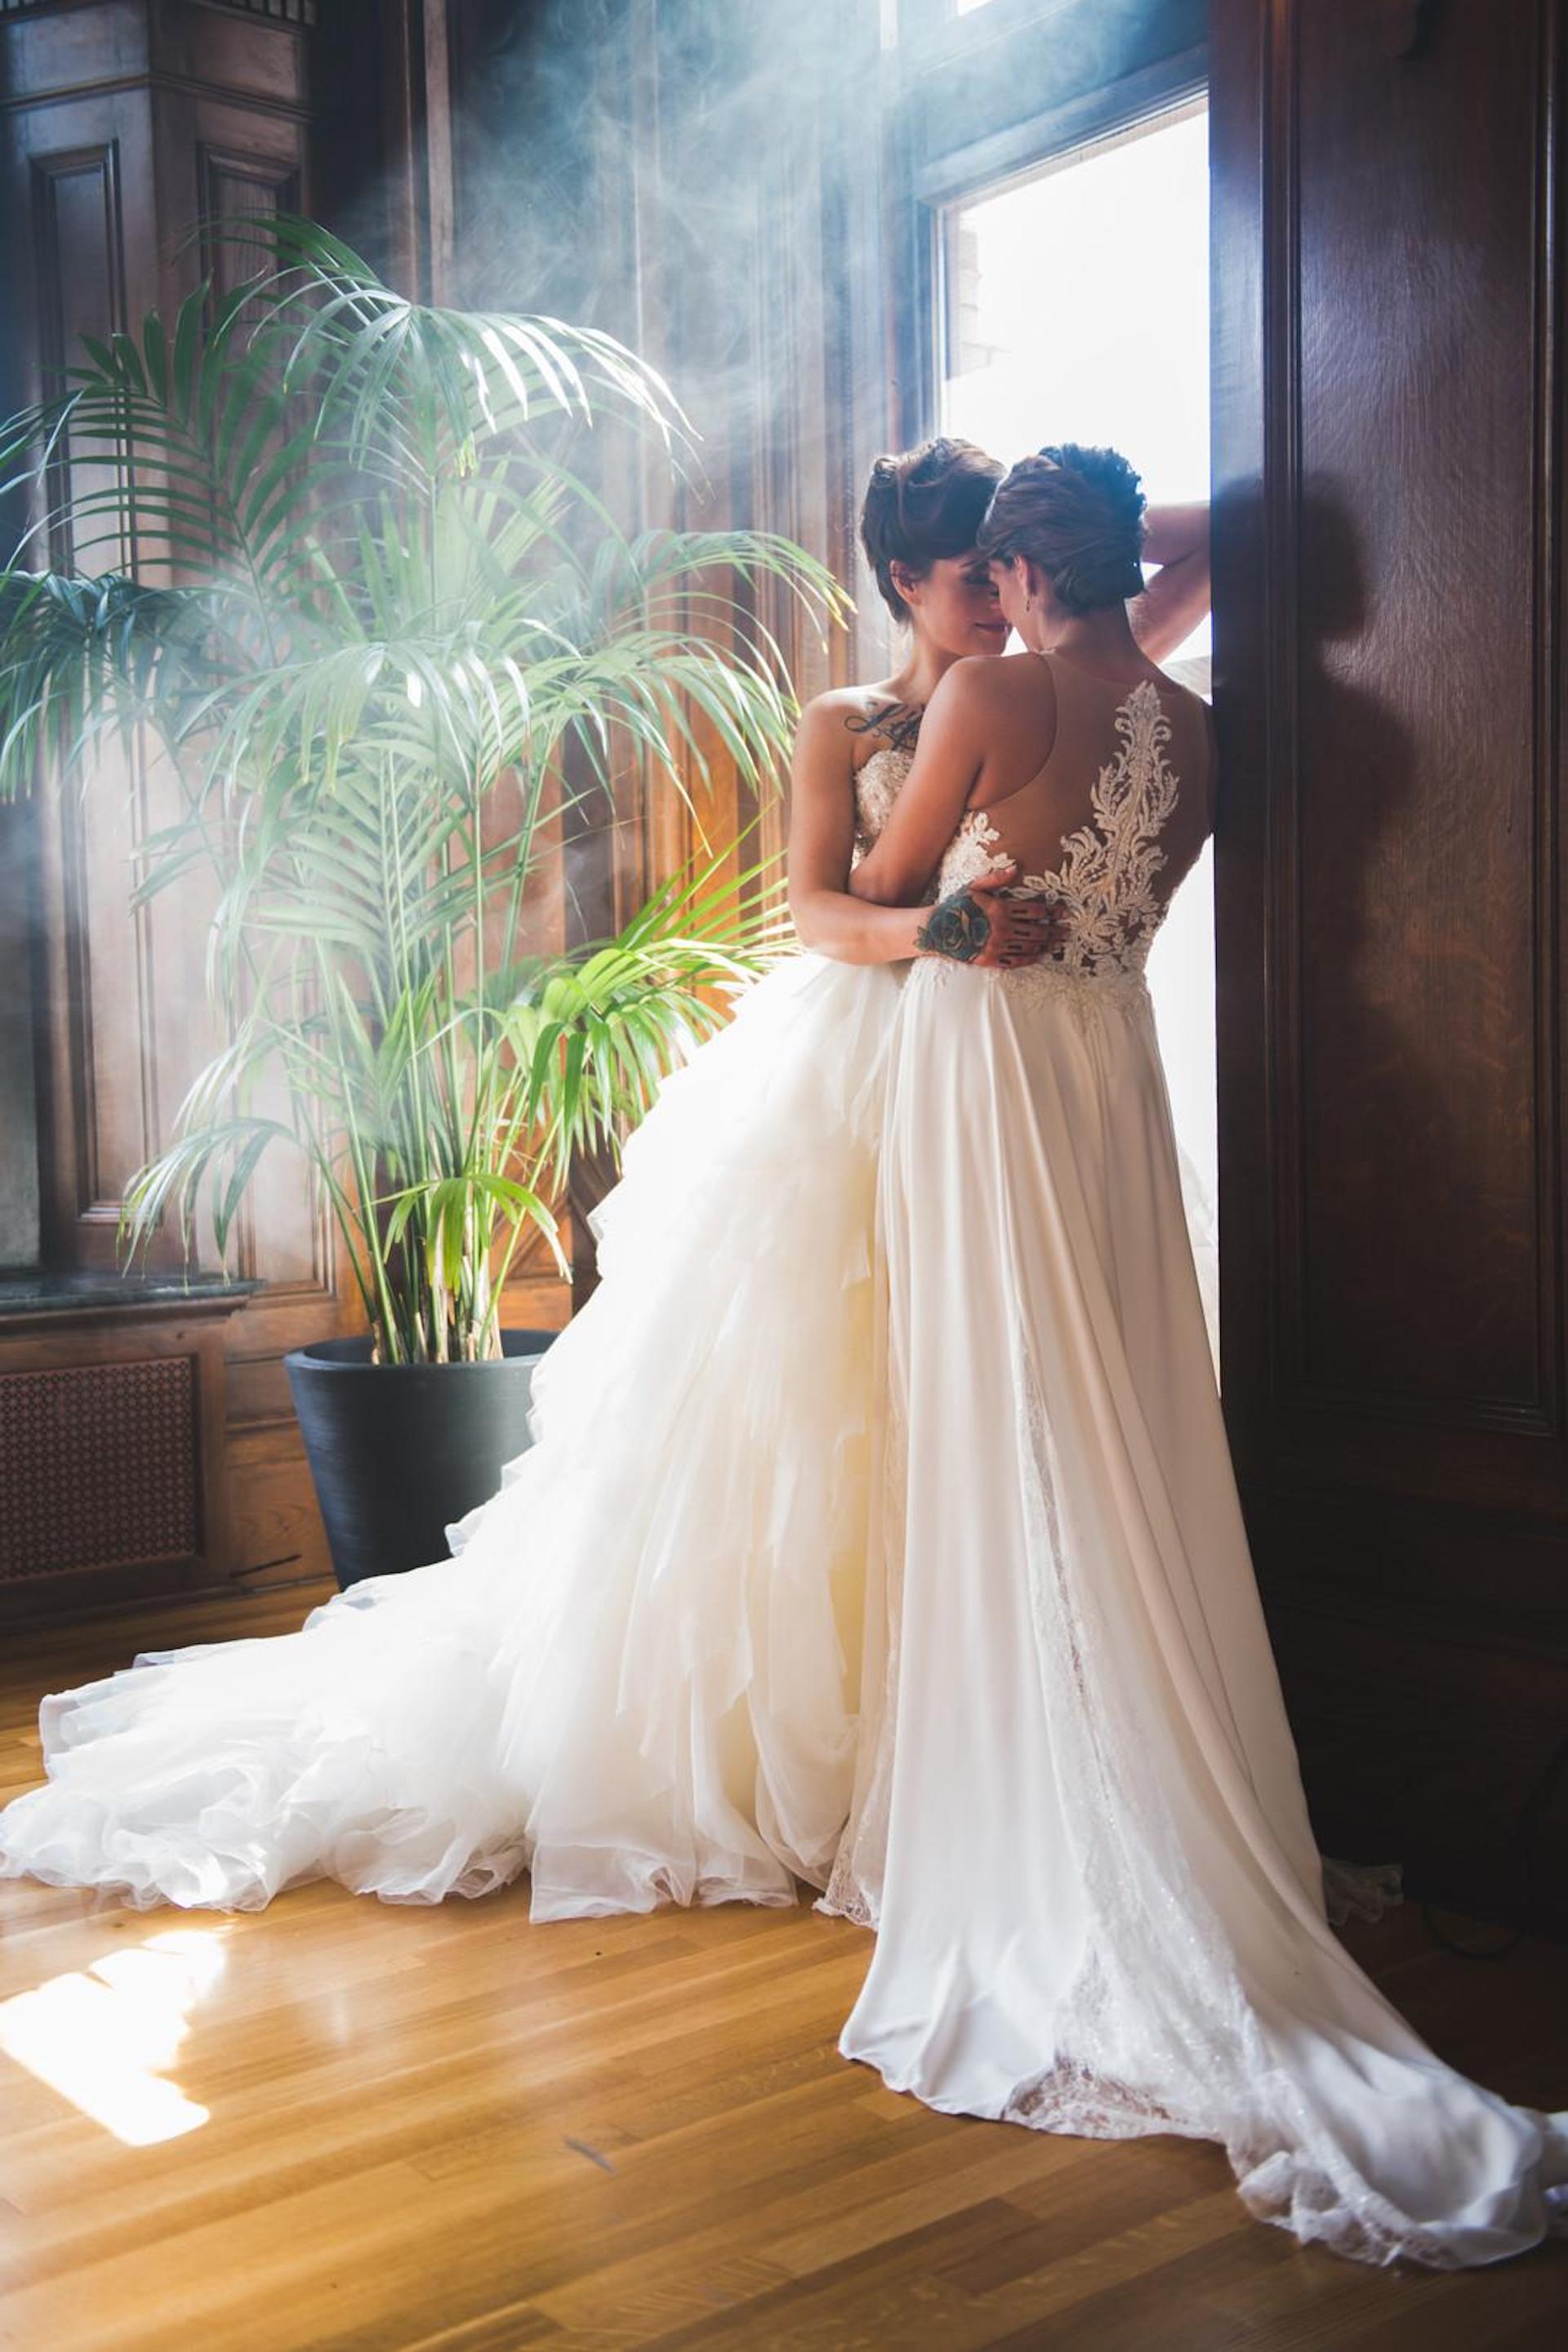 Two Brides - #Loveislove  Certified Wedding and event Planner